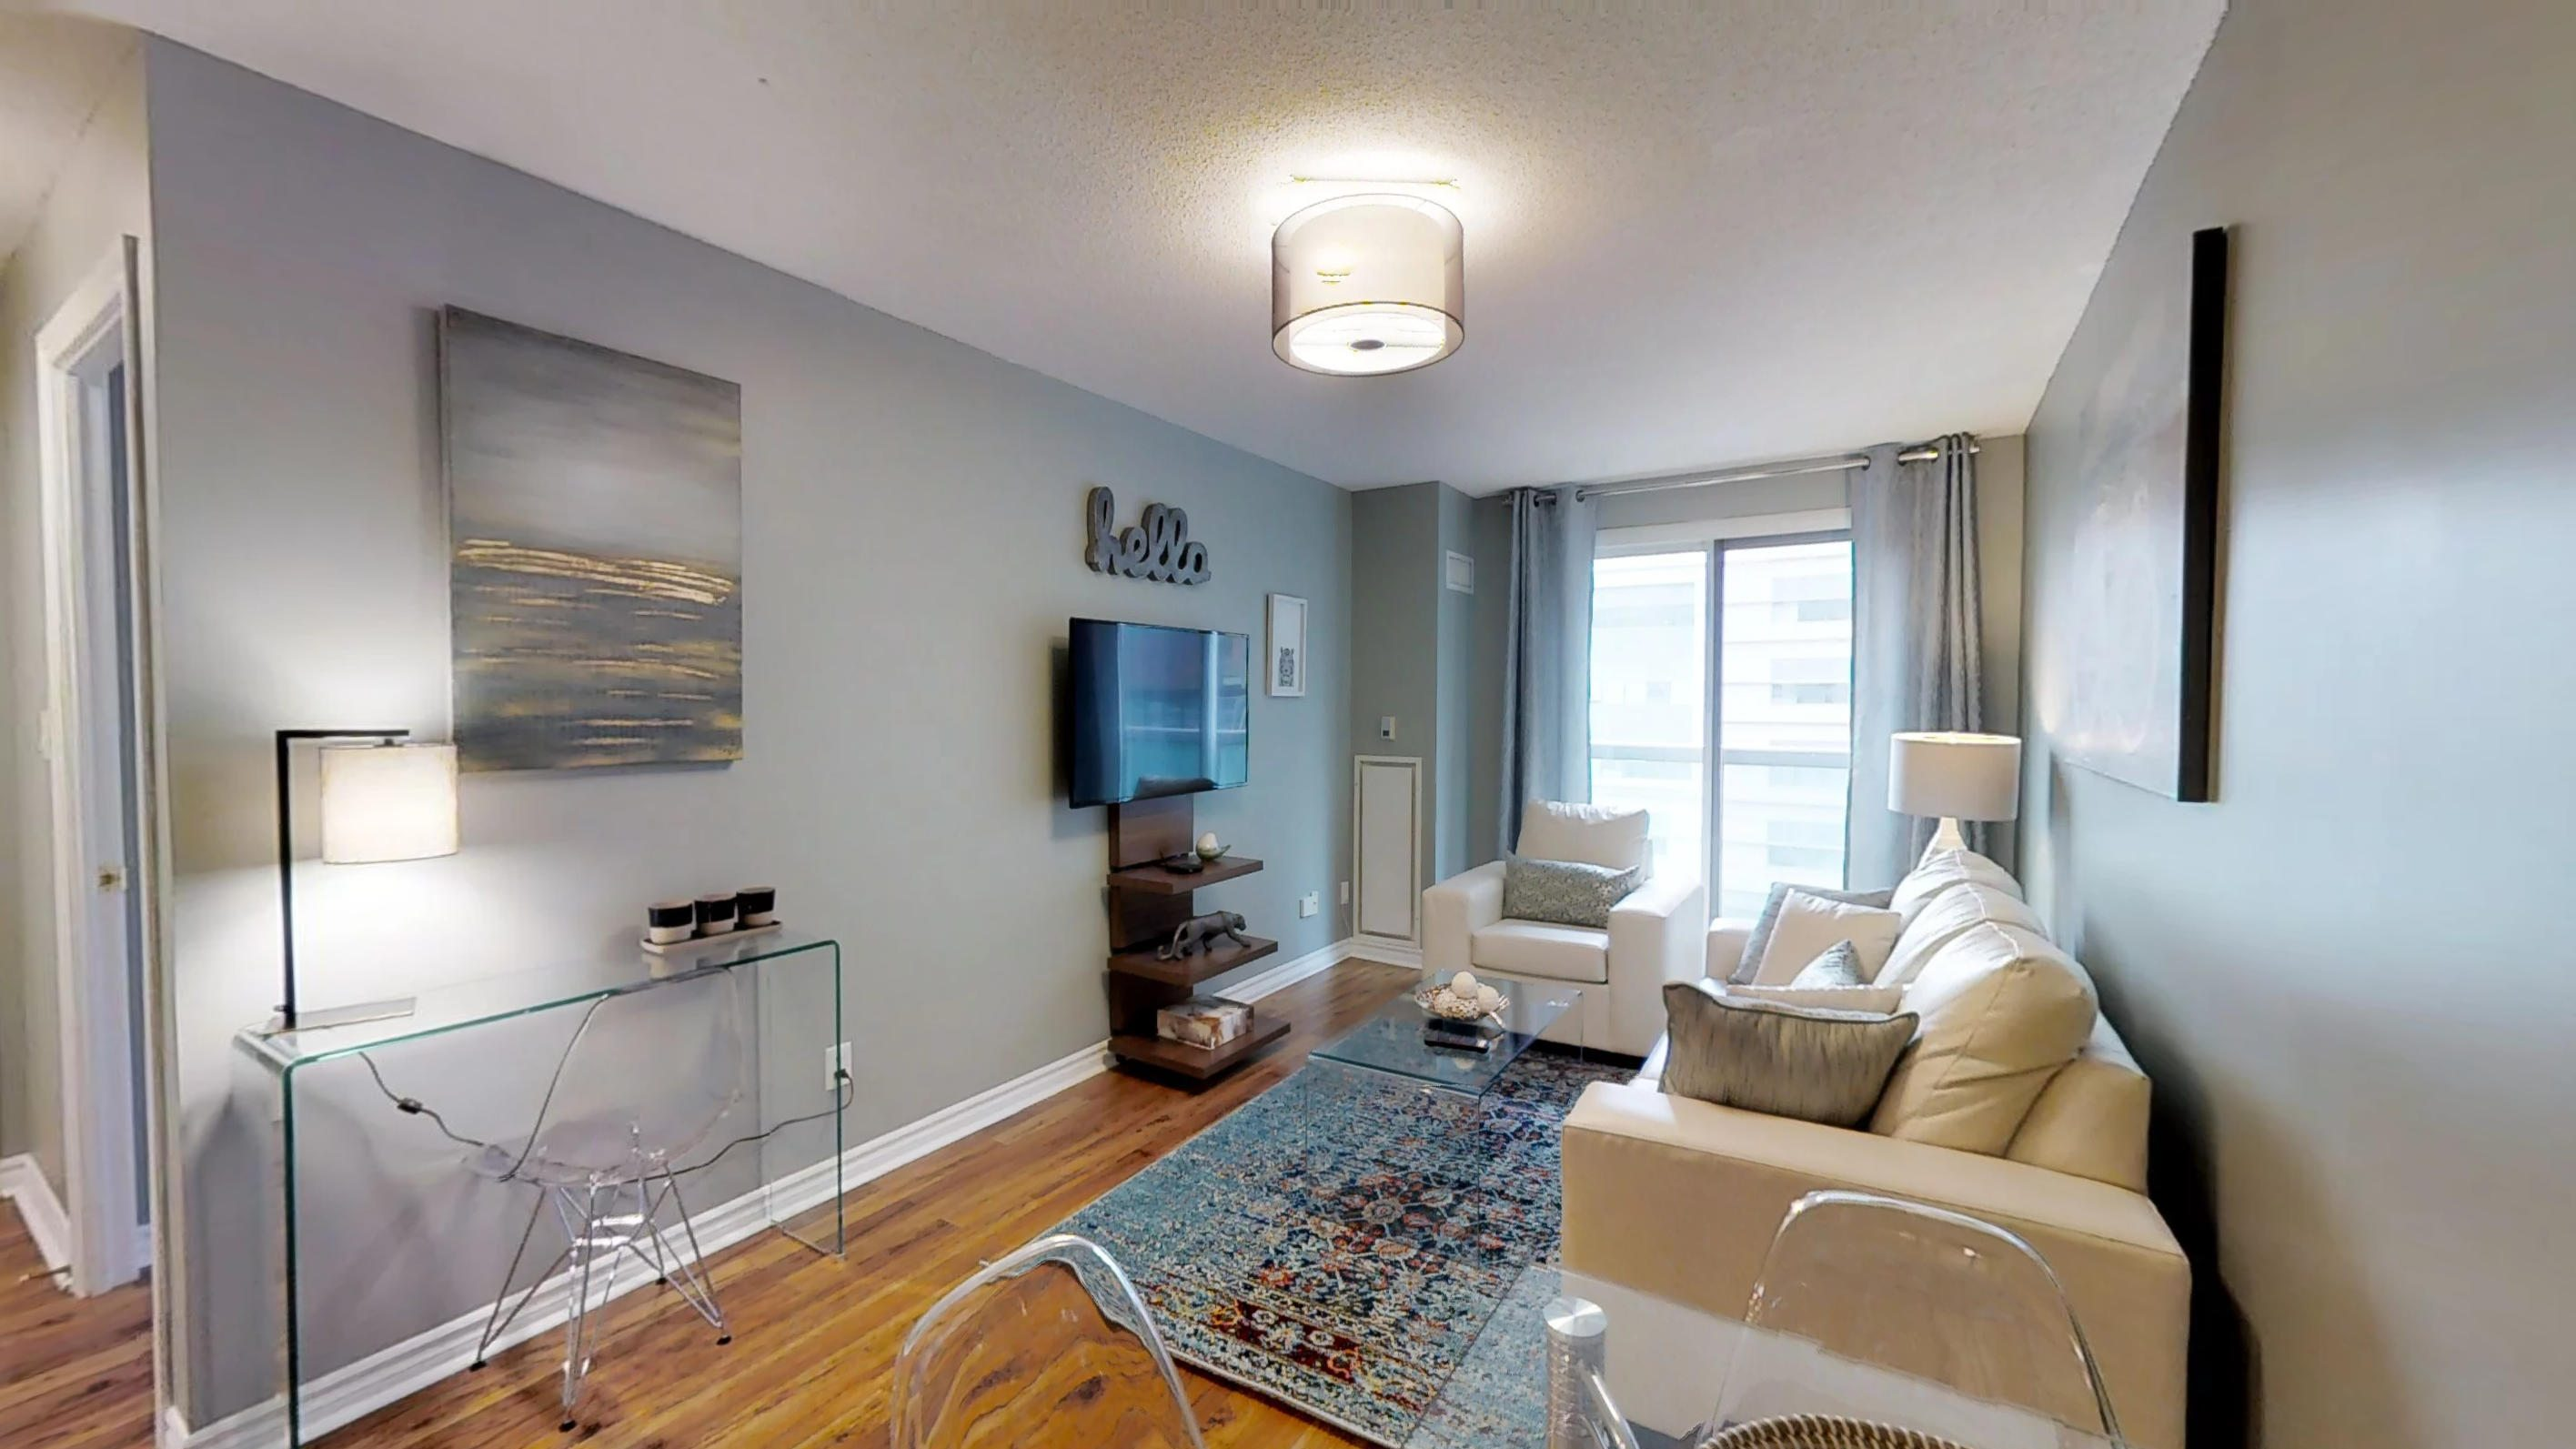 rugs, wall art, and window in the living room of a furnished apartment in Toronto's Financial District